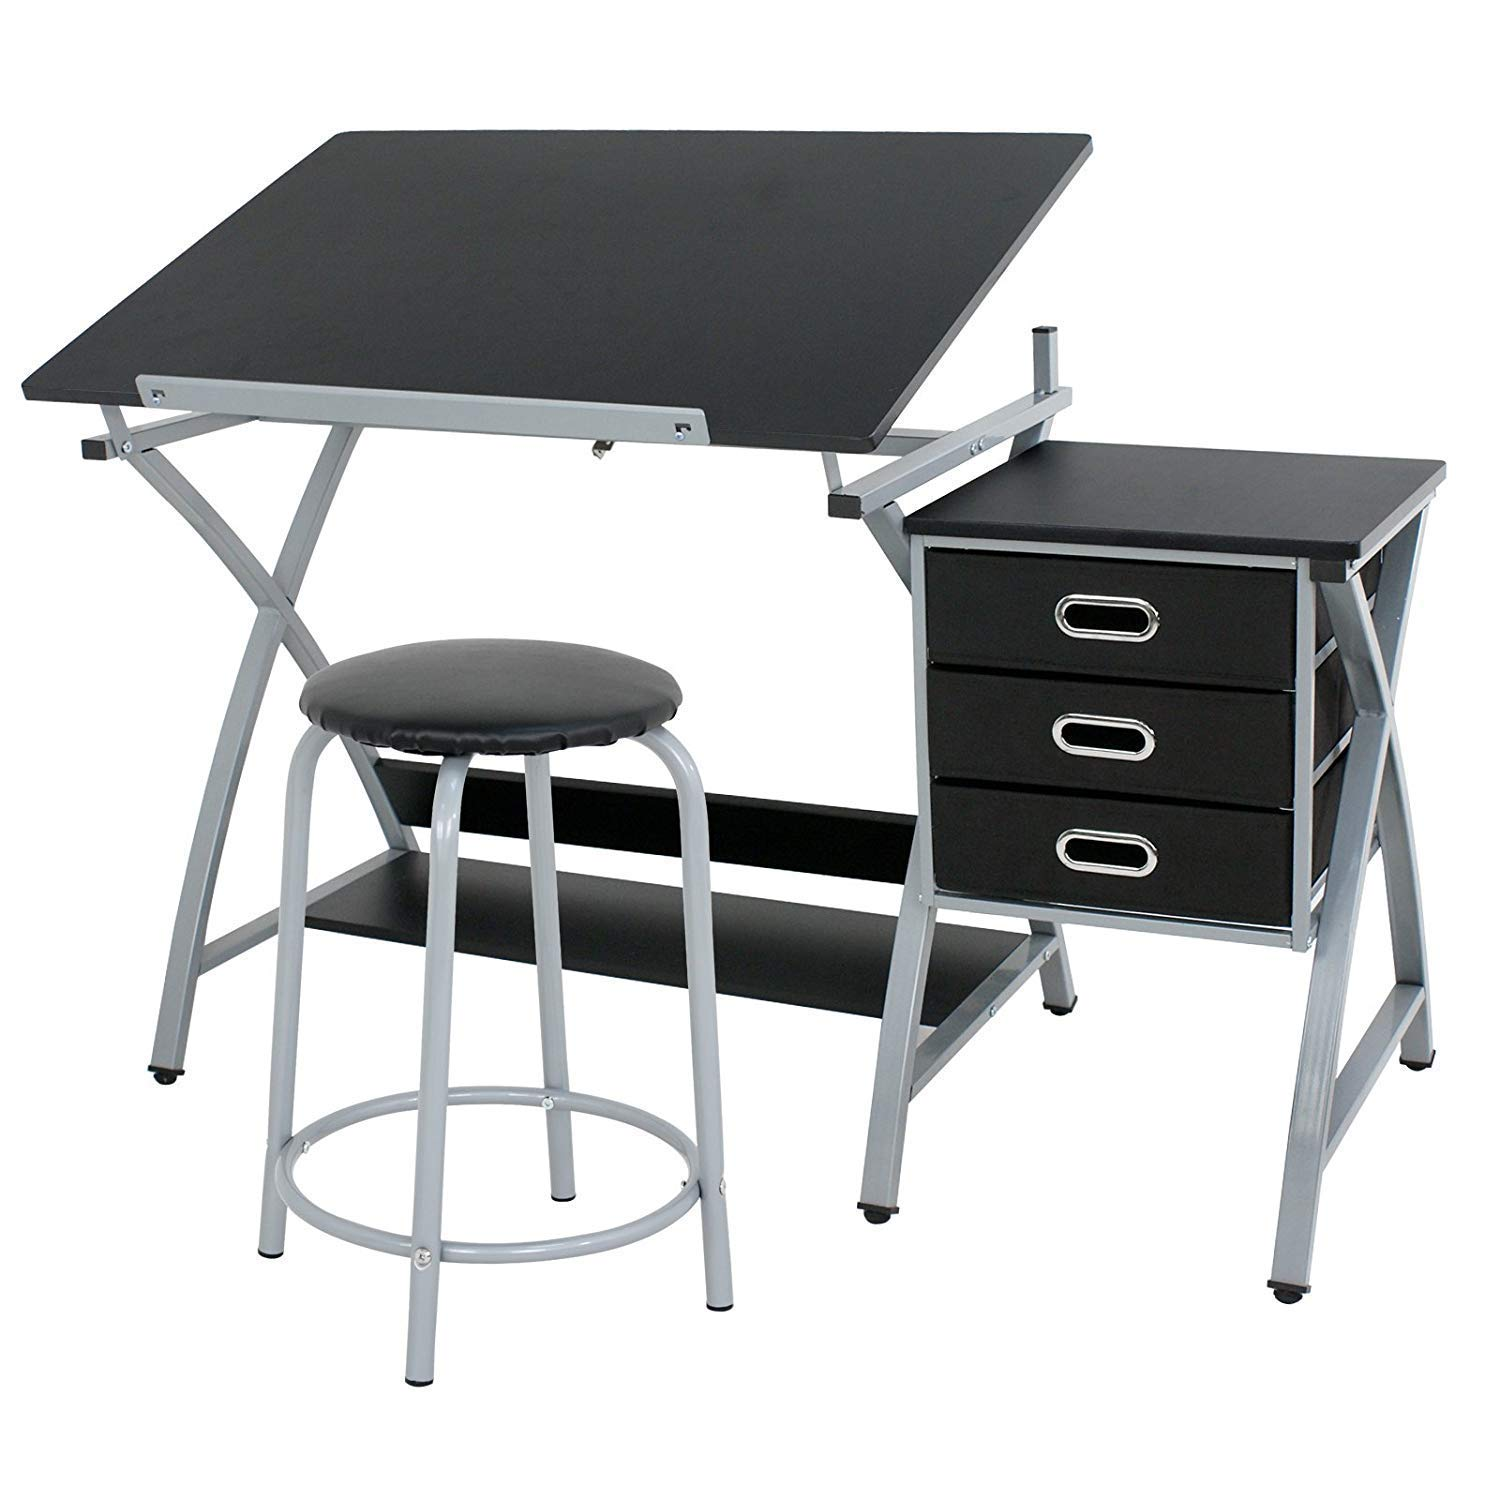 HomGarde MDF Drawing Drafting Table Art & Craft Drafting Desk Hobby Folding Adjustable Craft Table Station w/Stool and 3 Storage Drawers